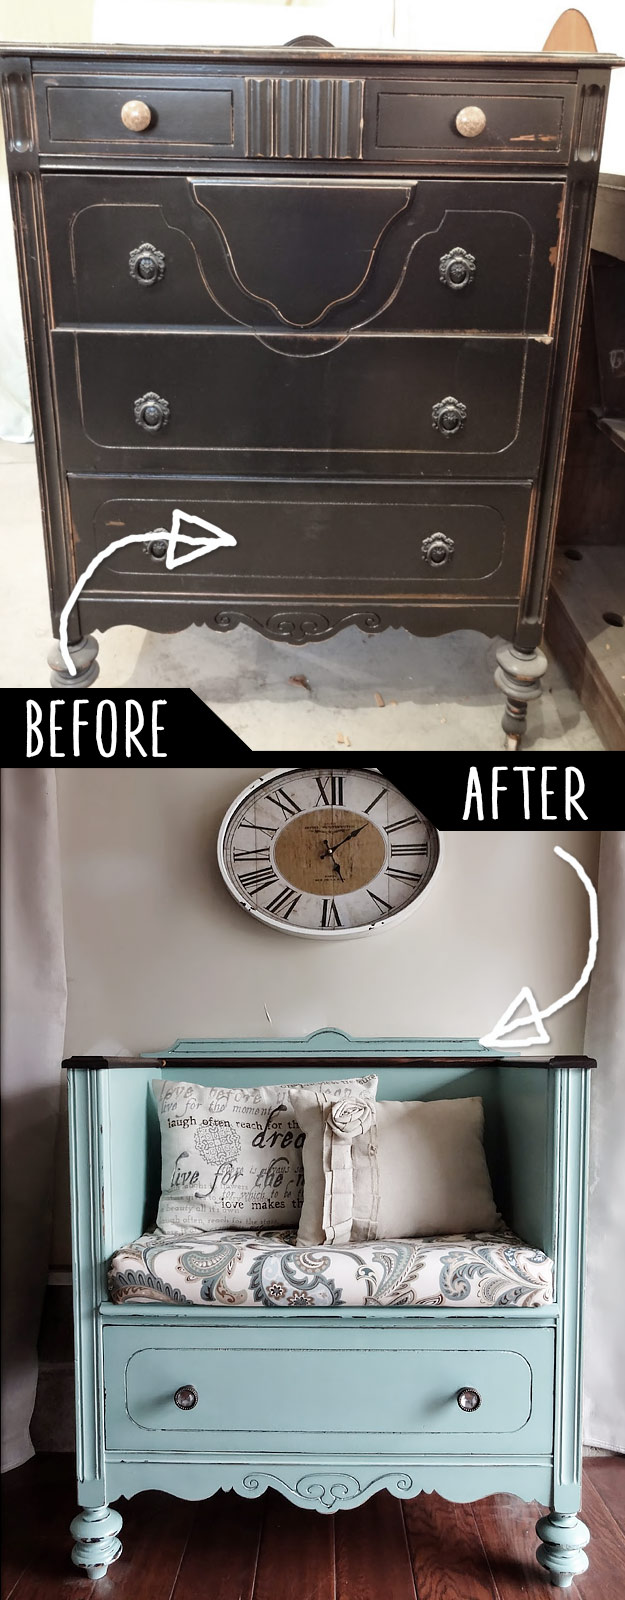 DIY Furniture Hacks | Unused Old Dresser Turned Bench | Cool Ideas for Creative Do It Yourself Furniture | Cheap Home Decor Ideas for Bedroom, Bathroom, Living Room, Kitchen  #diy